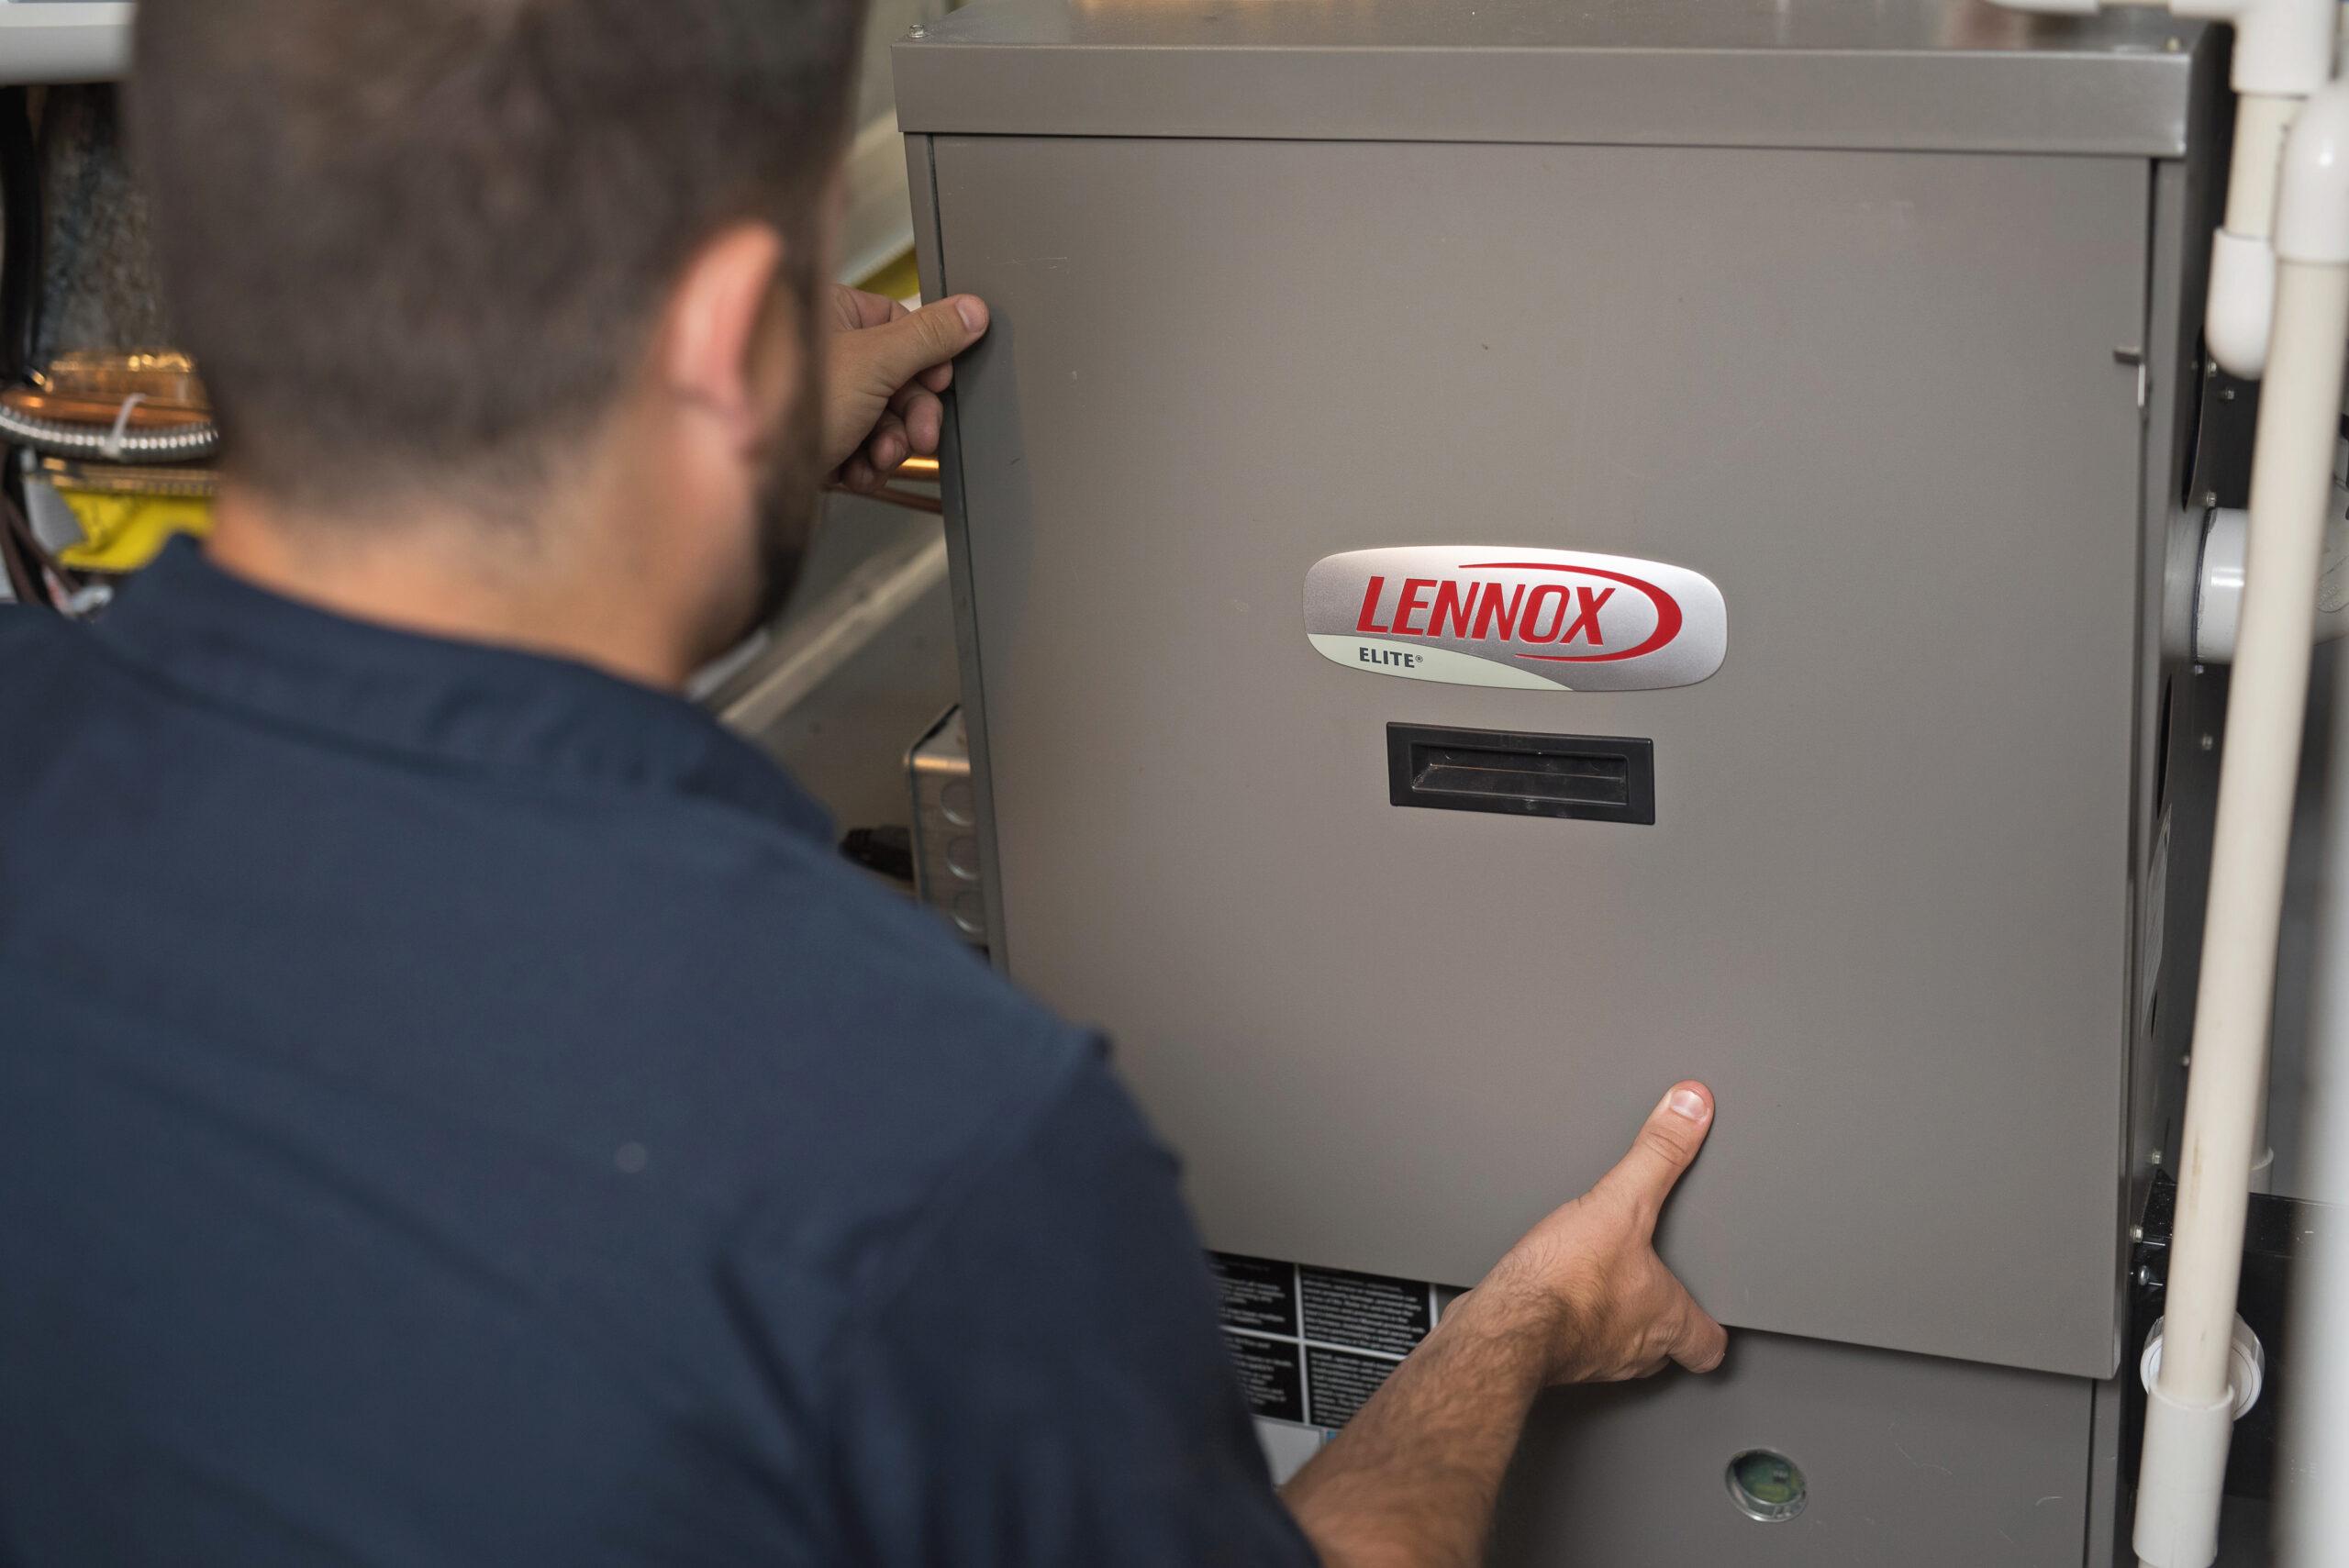 Lennox branded commercial HVAC equipment being installed in Vancouver, Burnaby, Surrey, Langley, Richmond, Coquitlam, Port Coquitlam, Pitt Meadows, Maple Ridge, Fort Langley, Aldergrove and more.